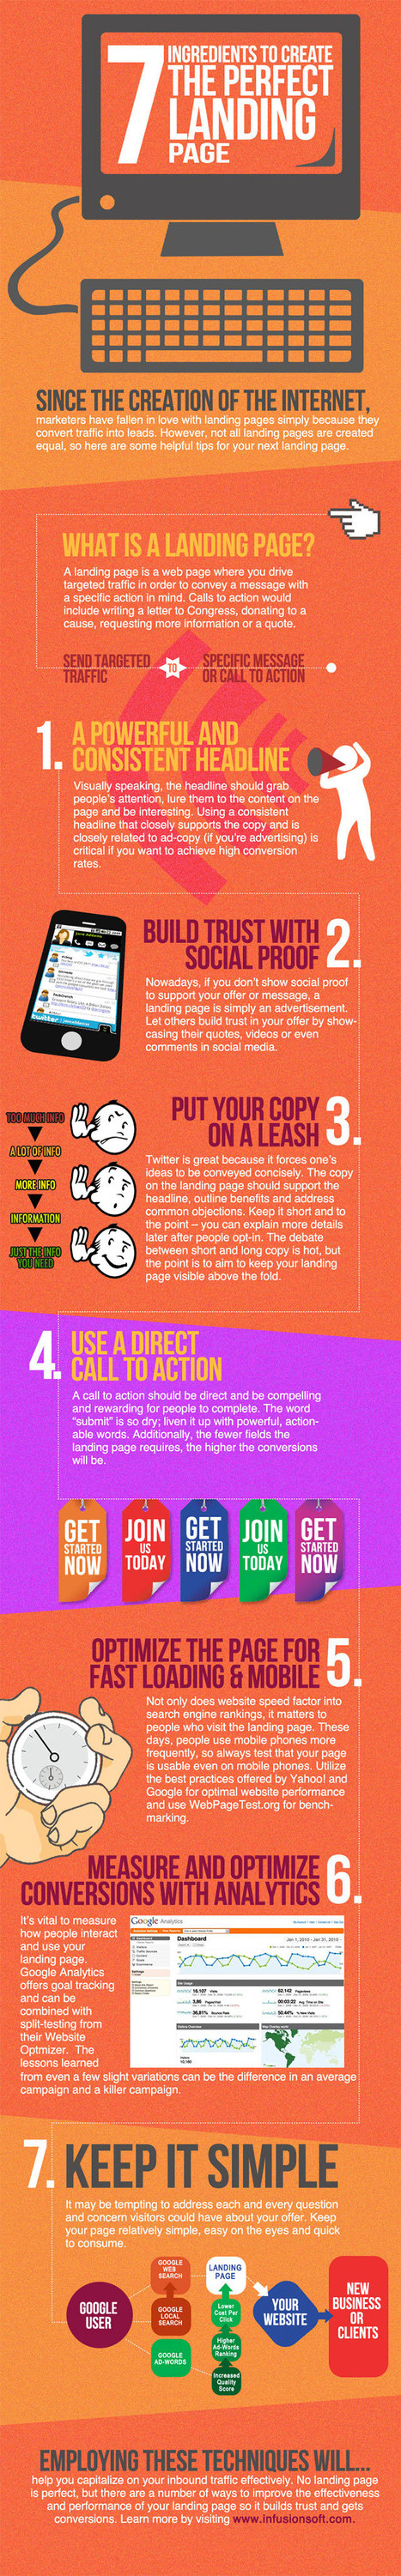 Perfect Landing Page Ingredients #infographic | Denver CO Small Business and Entrepreneur Information Center | Scoop.it